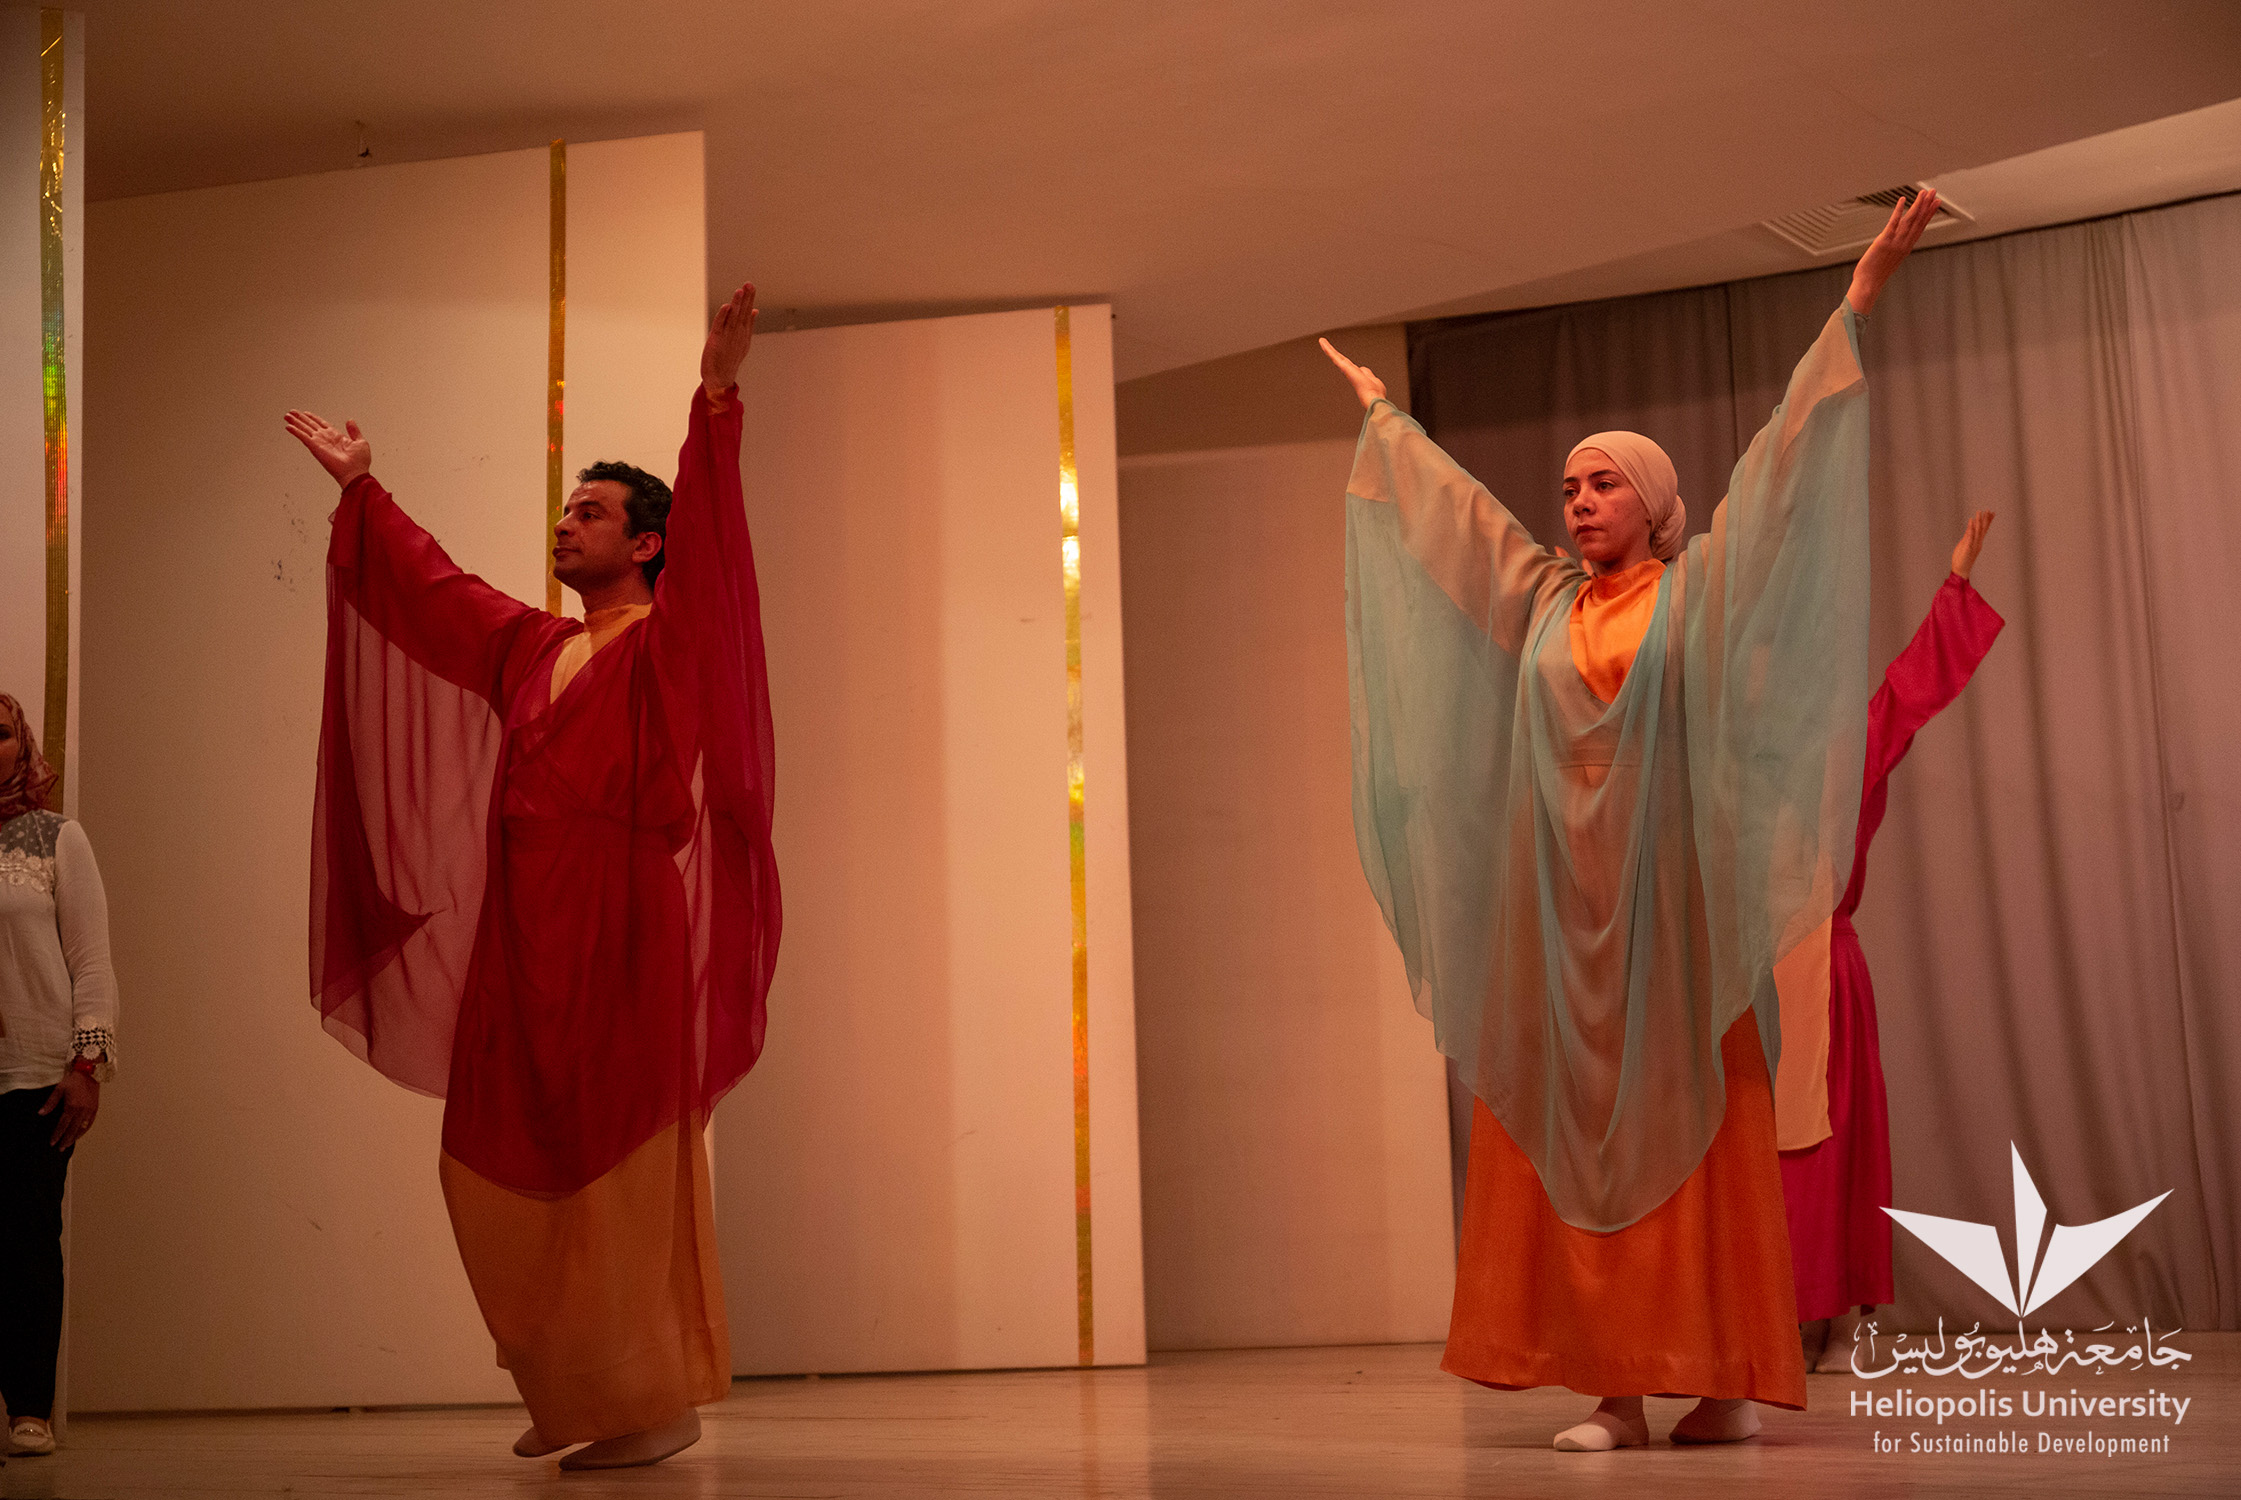 Moonlight-Eurythmy-Space of Culture27